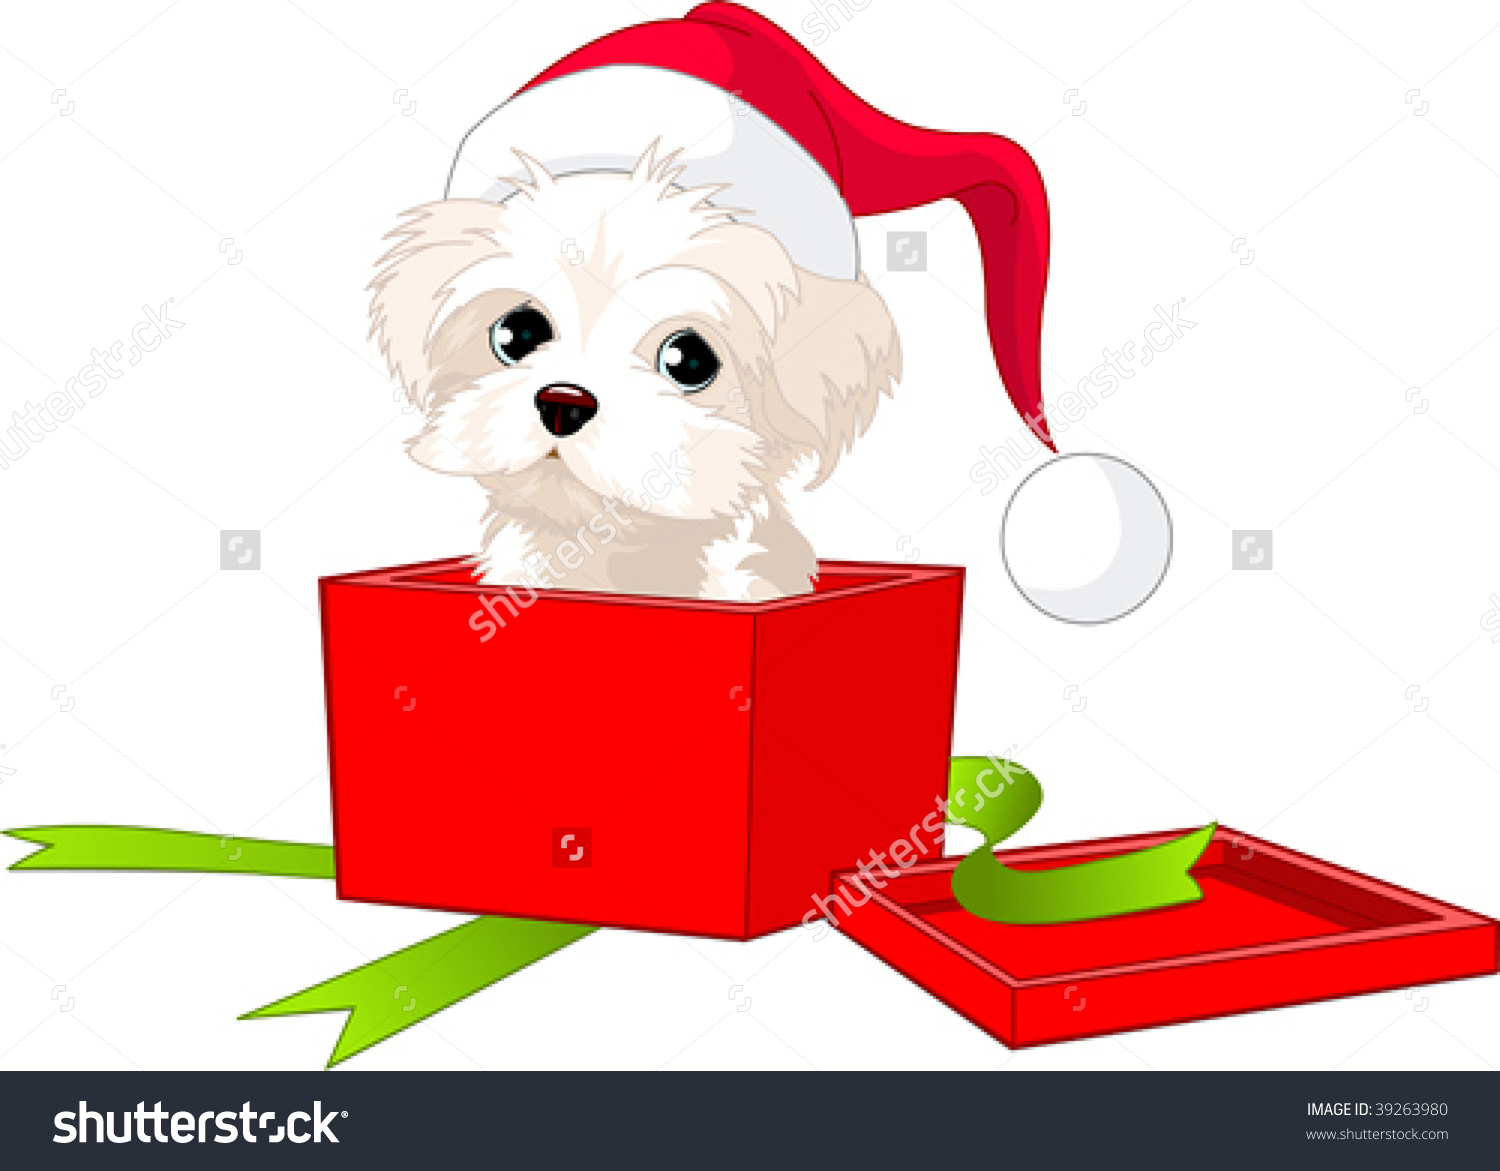 A Cute Puppy Wrapped Up In A Box Like A Christmas Gift. Stock.